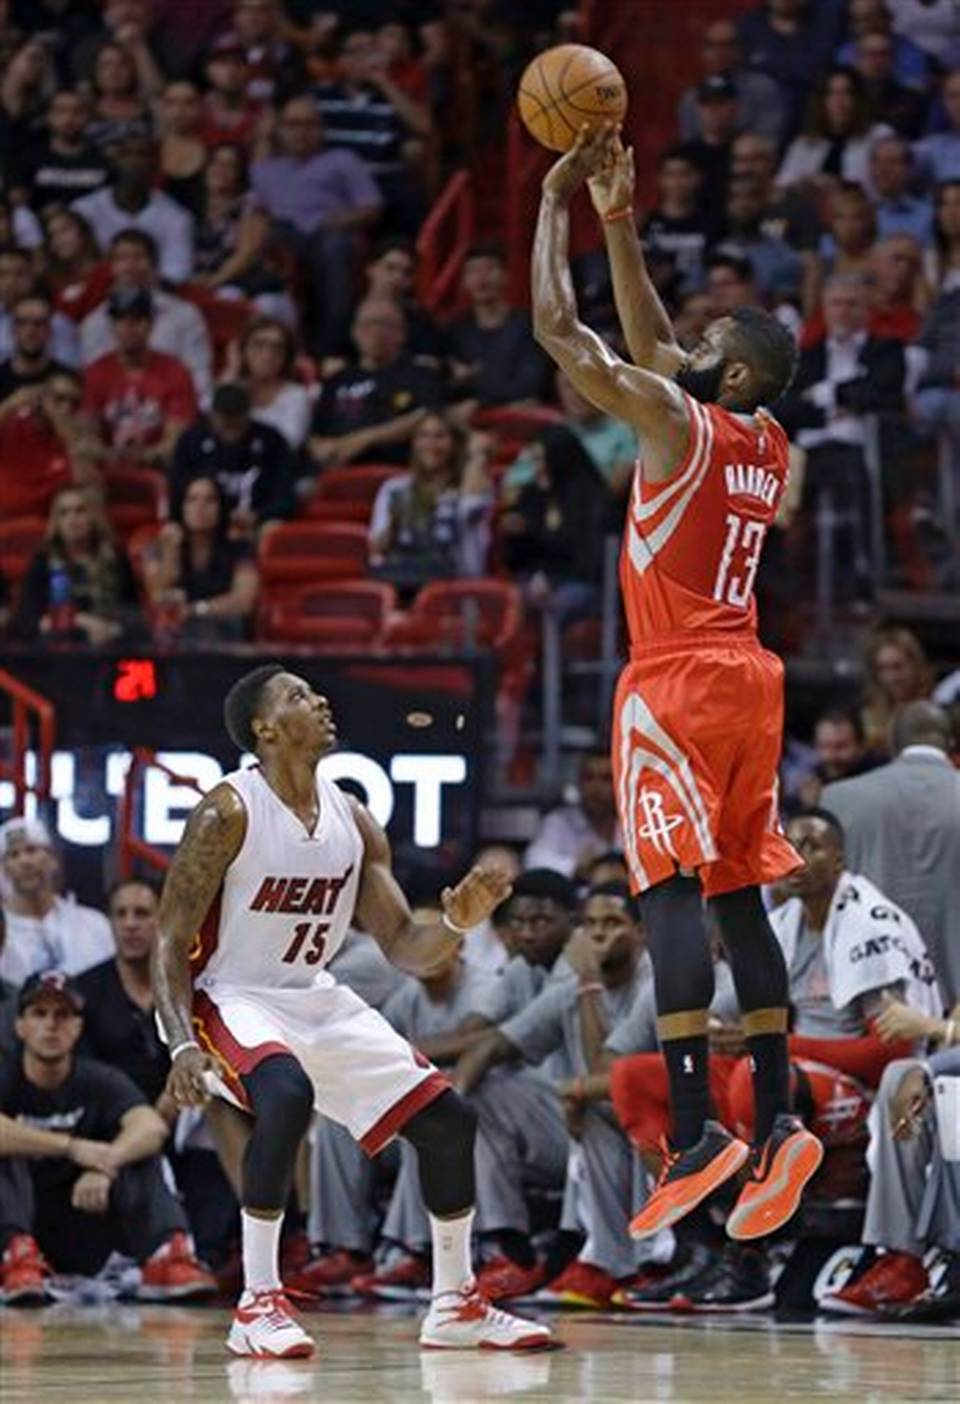 James Harden knocks down the jumper over Chalmers. Harden has more made free throws than field goals this season.